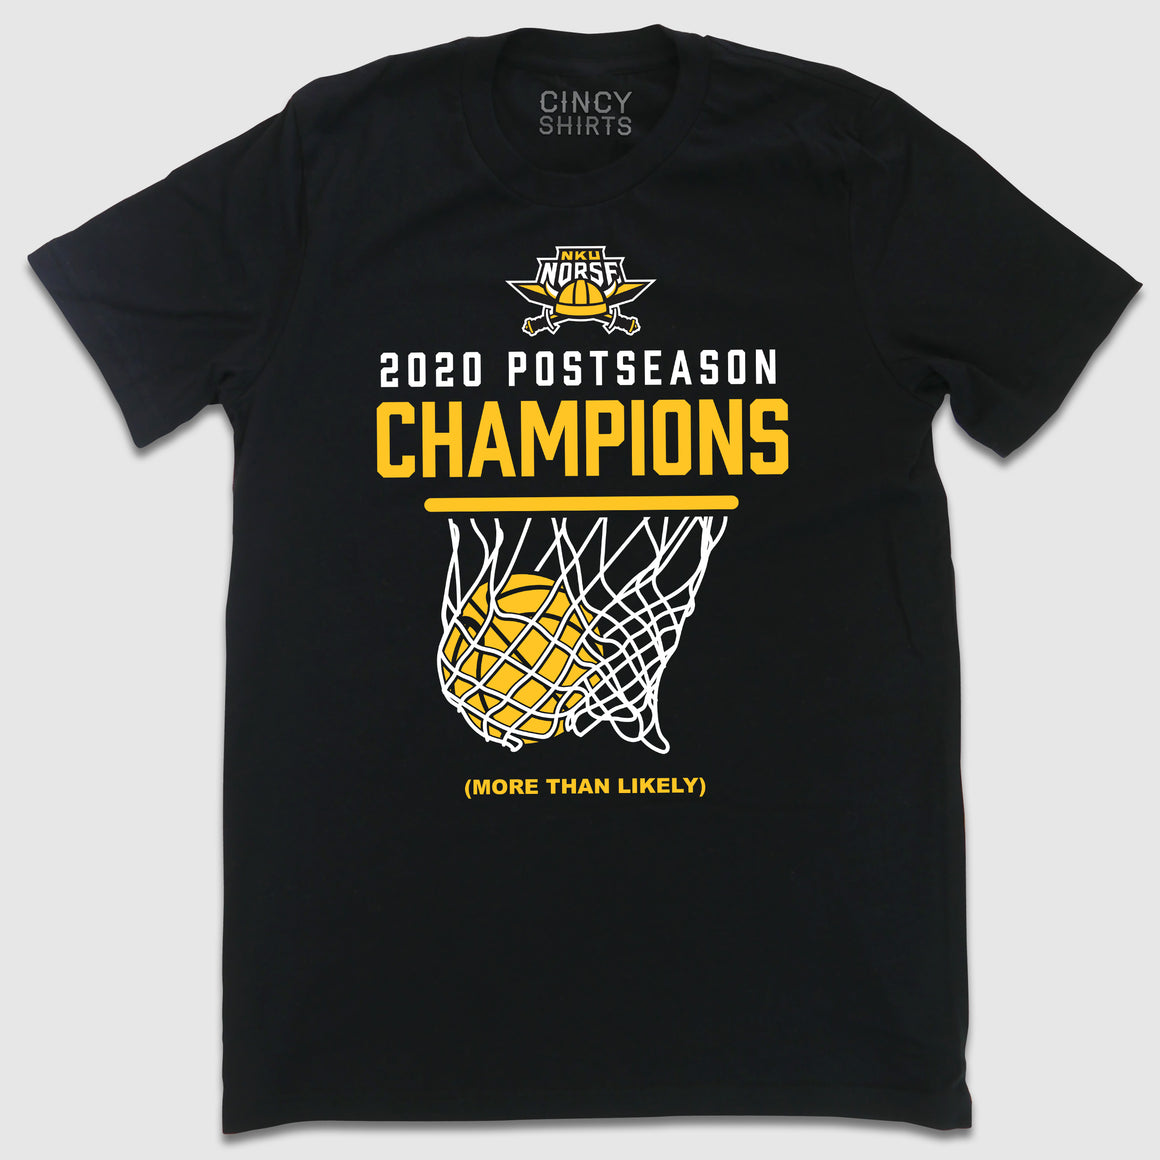 NKU 2020 Postseason Champions (More Than Likely) - Cincy Shirts